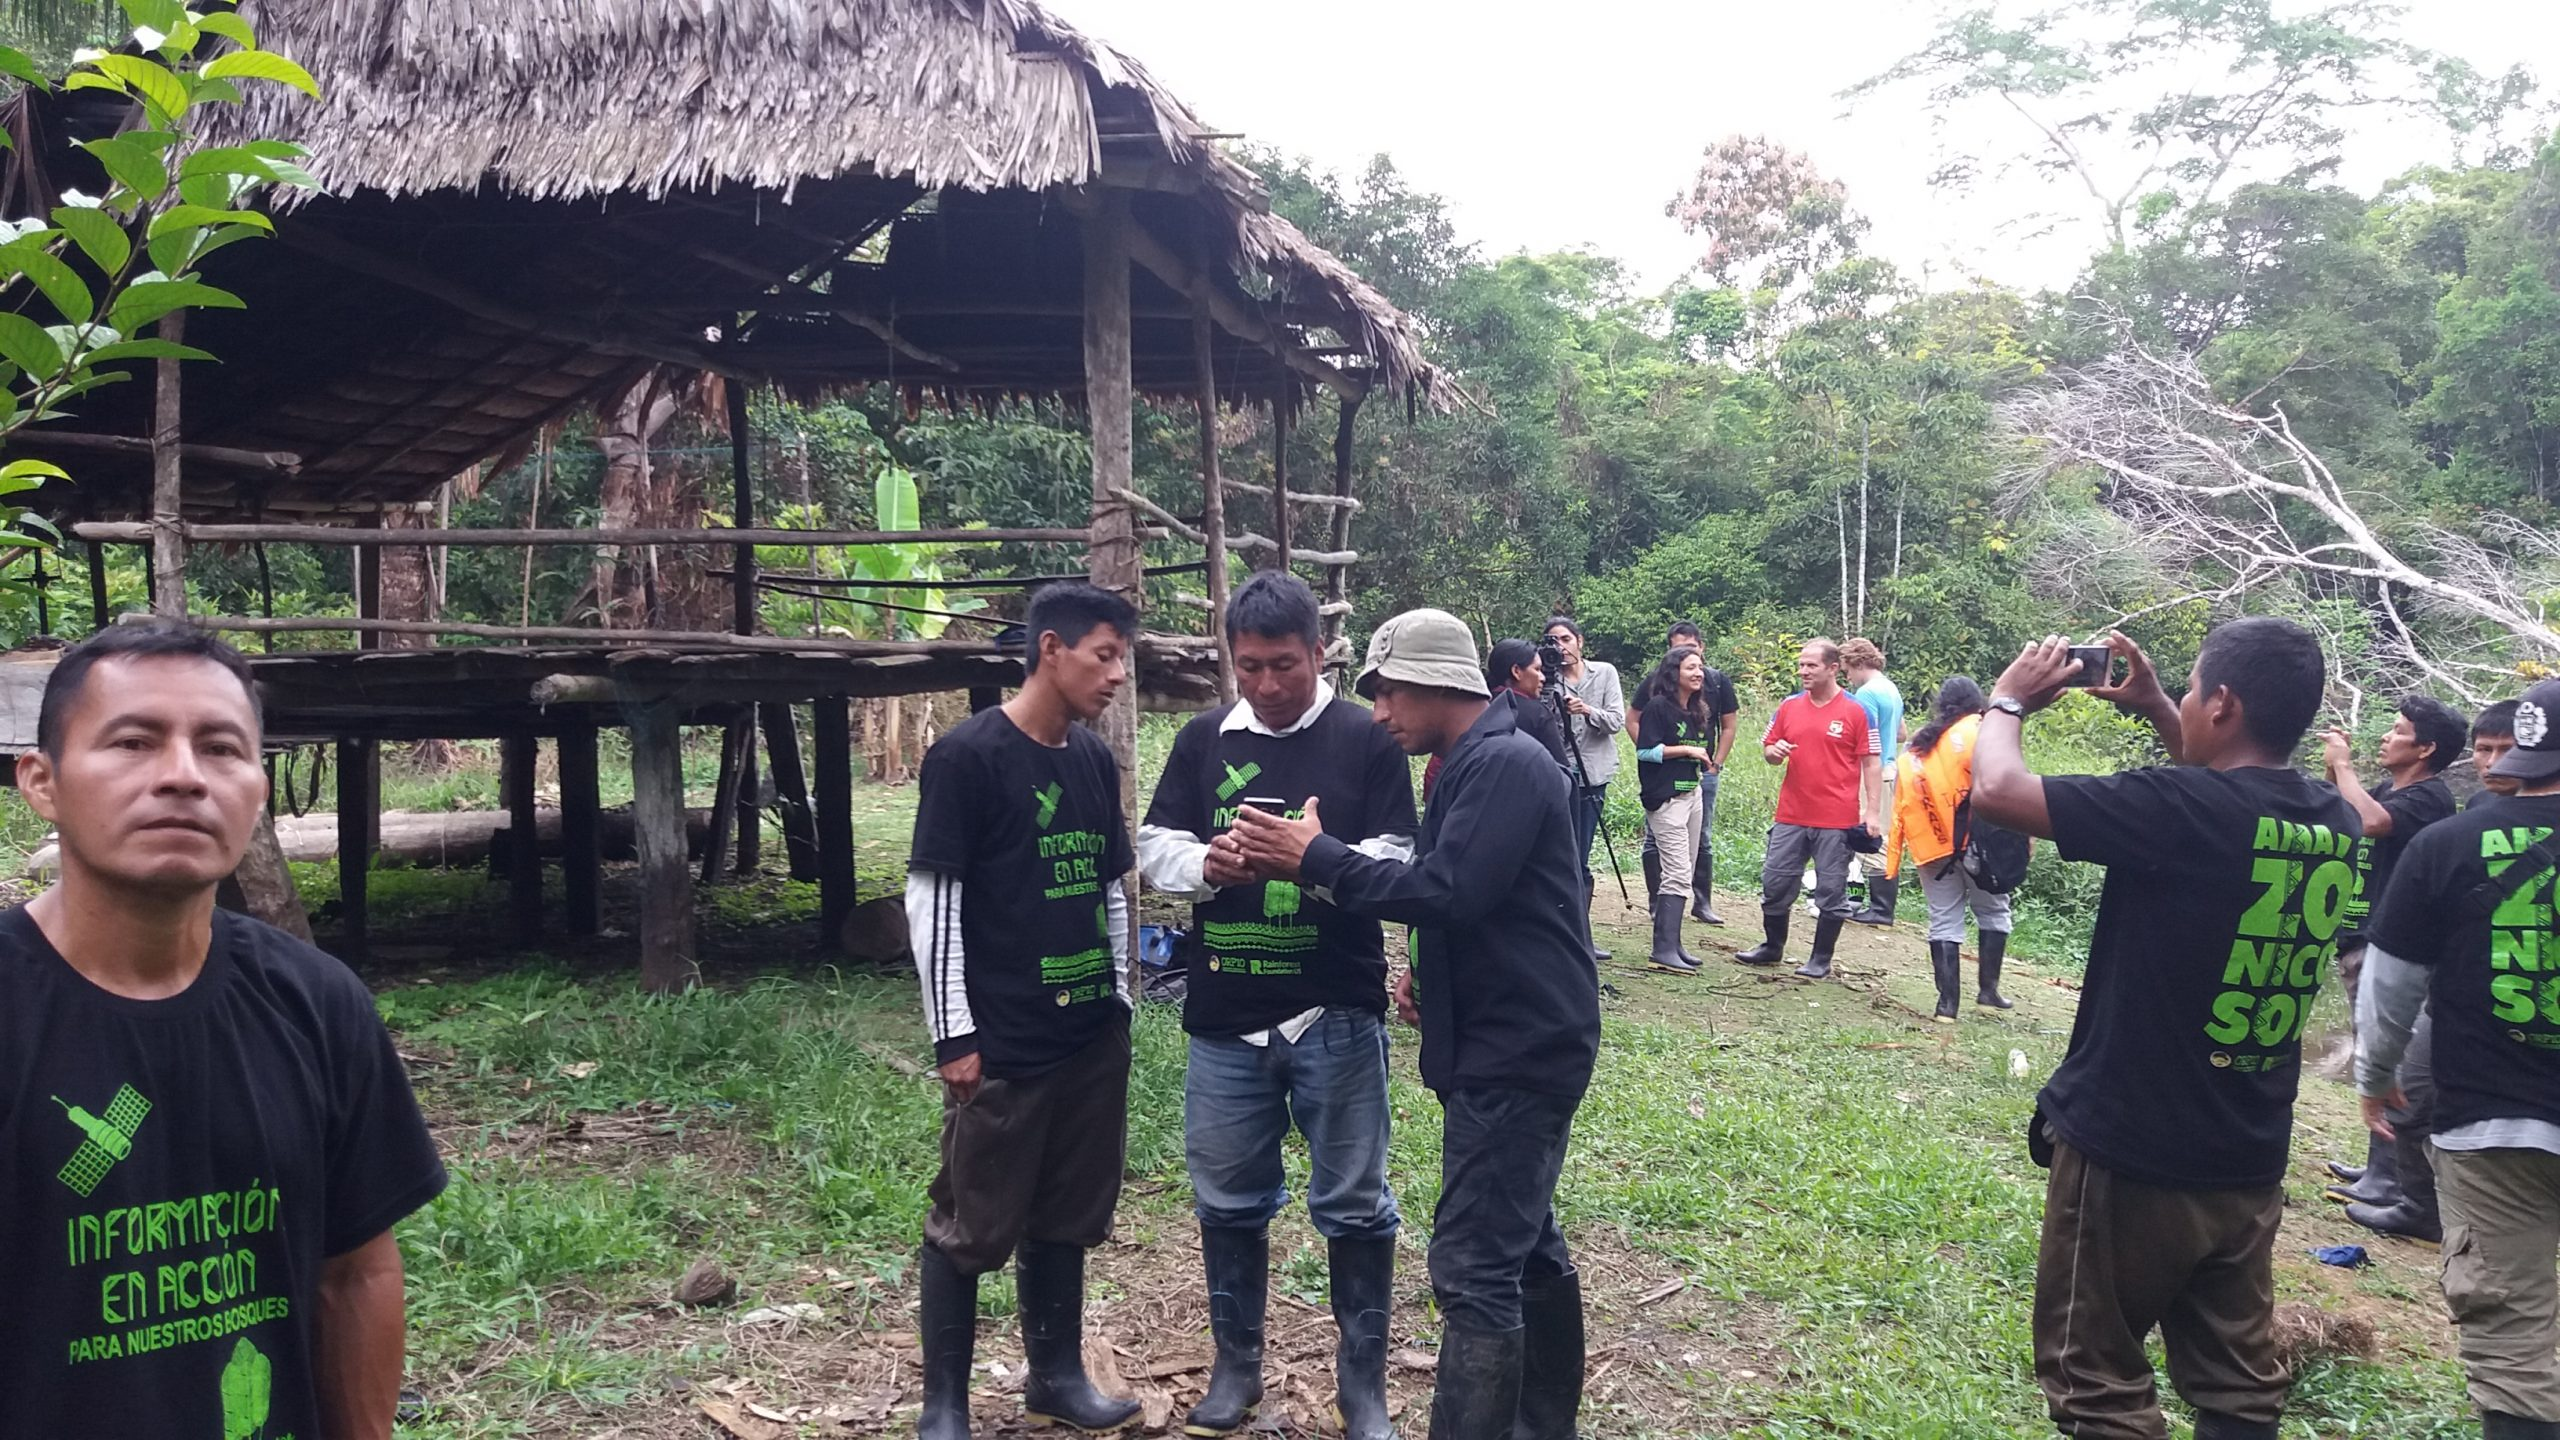 Indigenous community monitors in Copal Urco plan a patrol to monitor deforestation